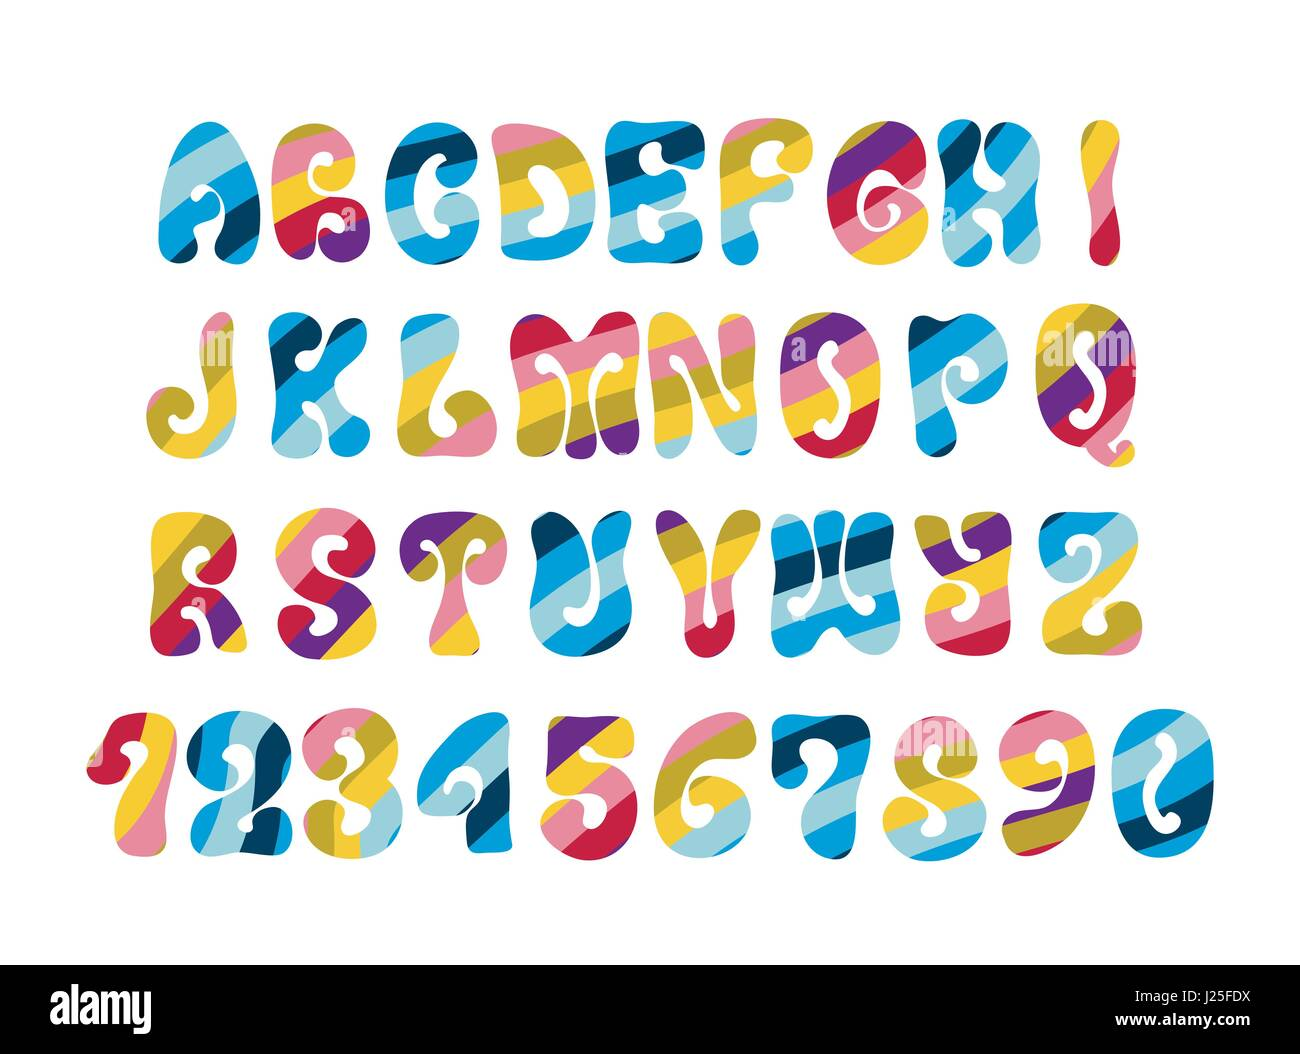 Psychedelic Font With Colorful Pattern Vintage Hippie